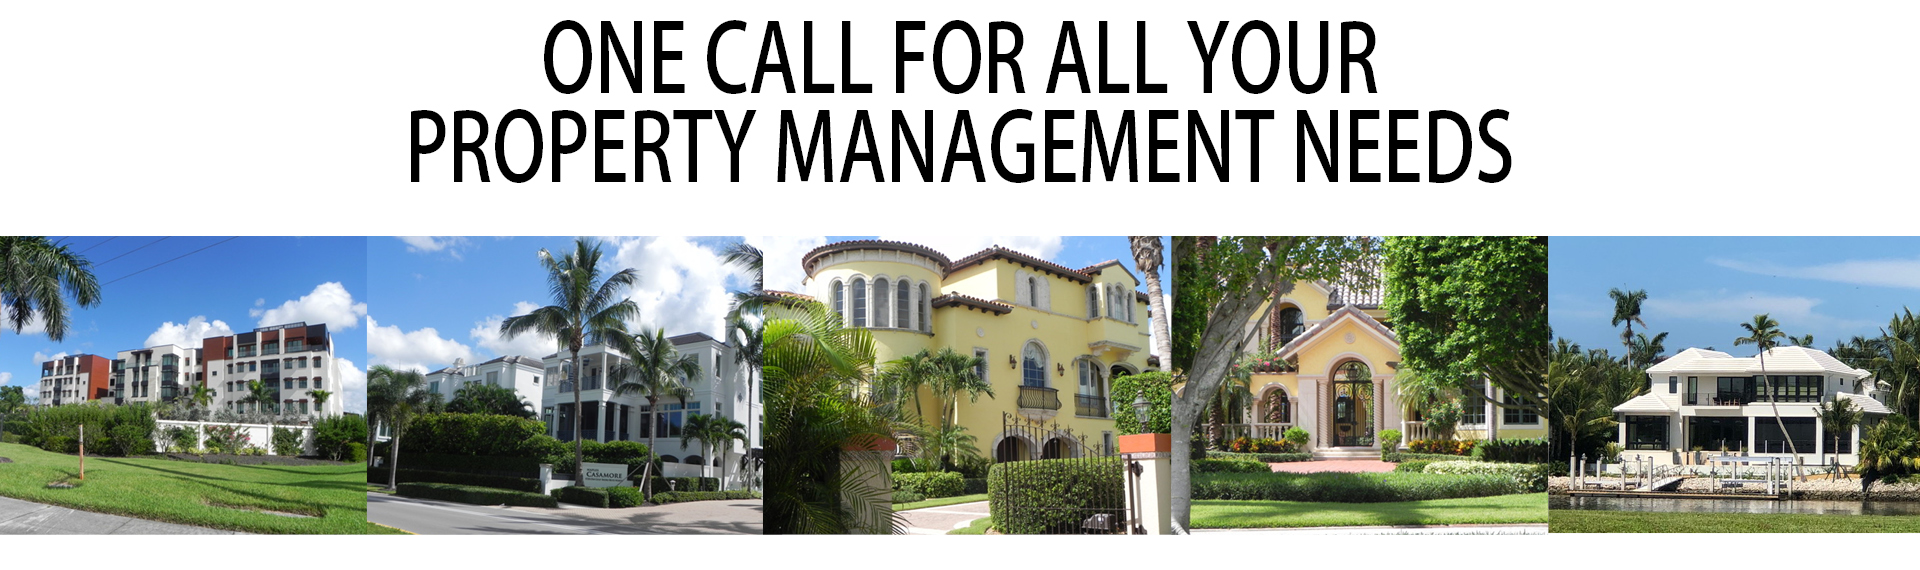 Naples Realty and Property Management